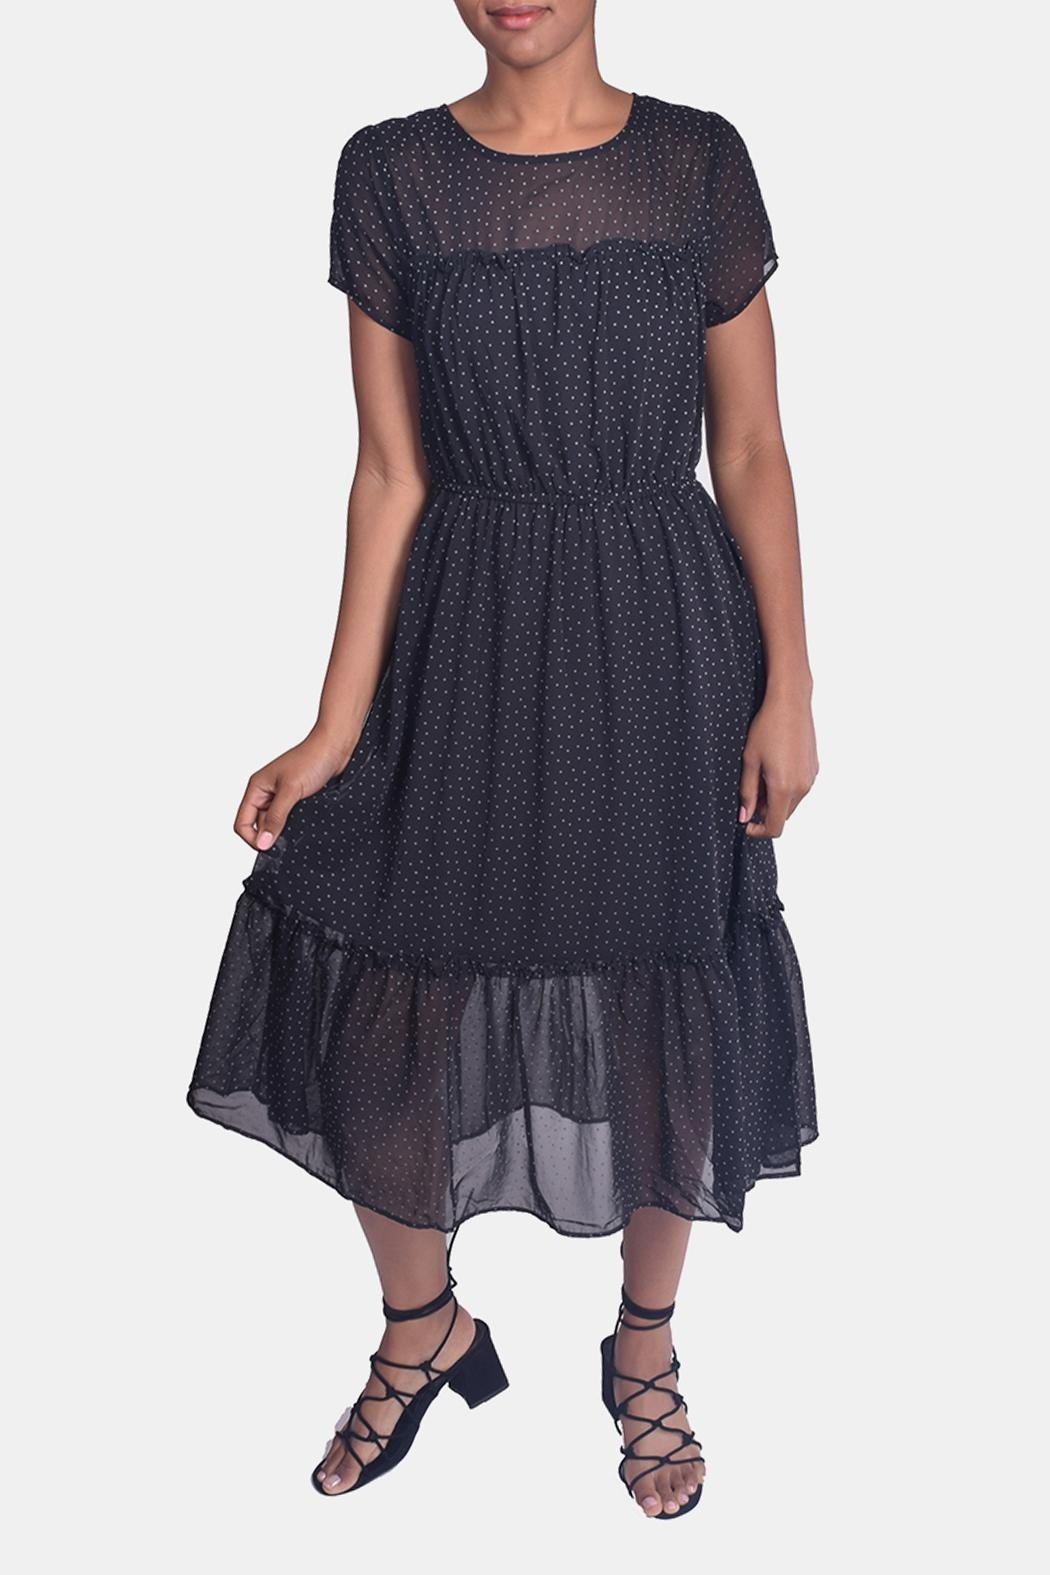 rokoko Polka Dot Dress from Los Angeles by Goldie\'s — Shoptiques